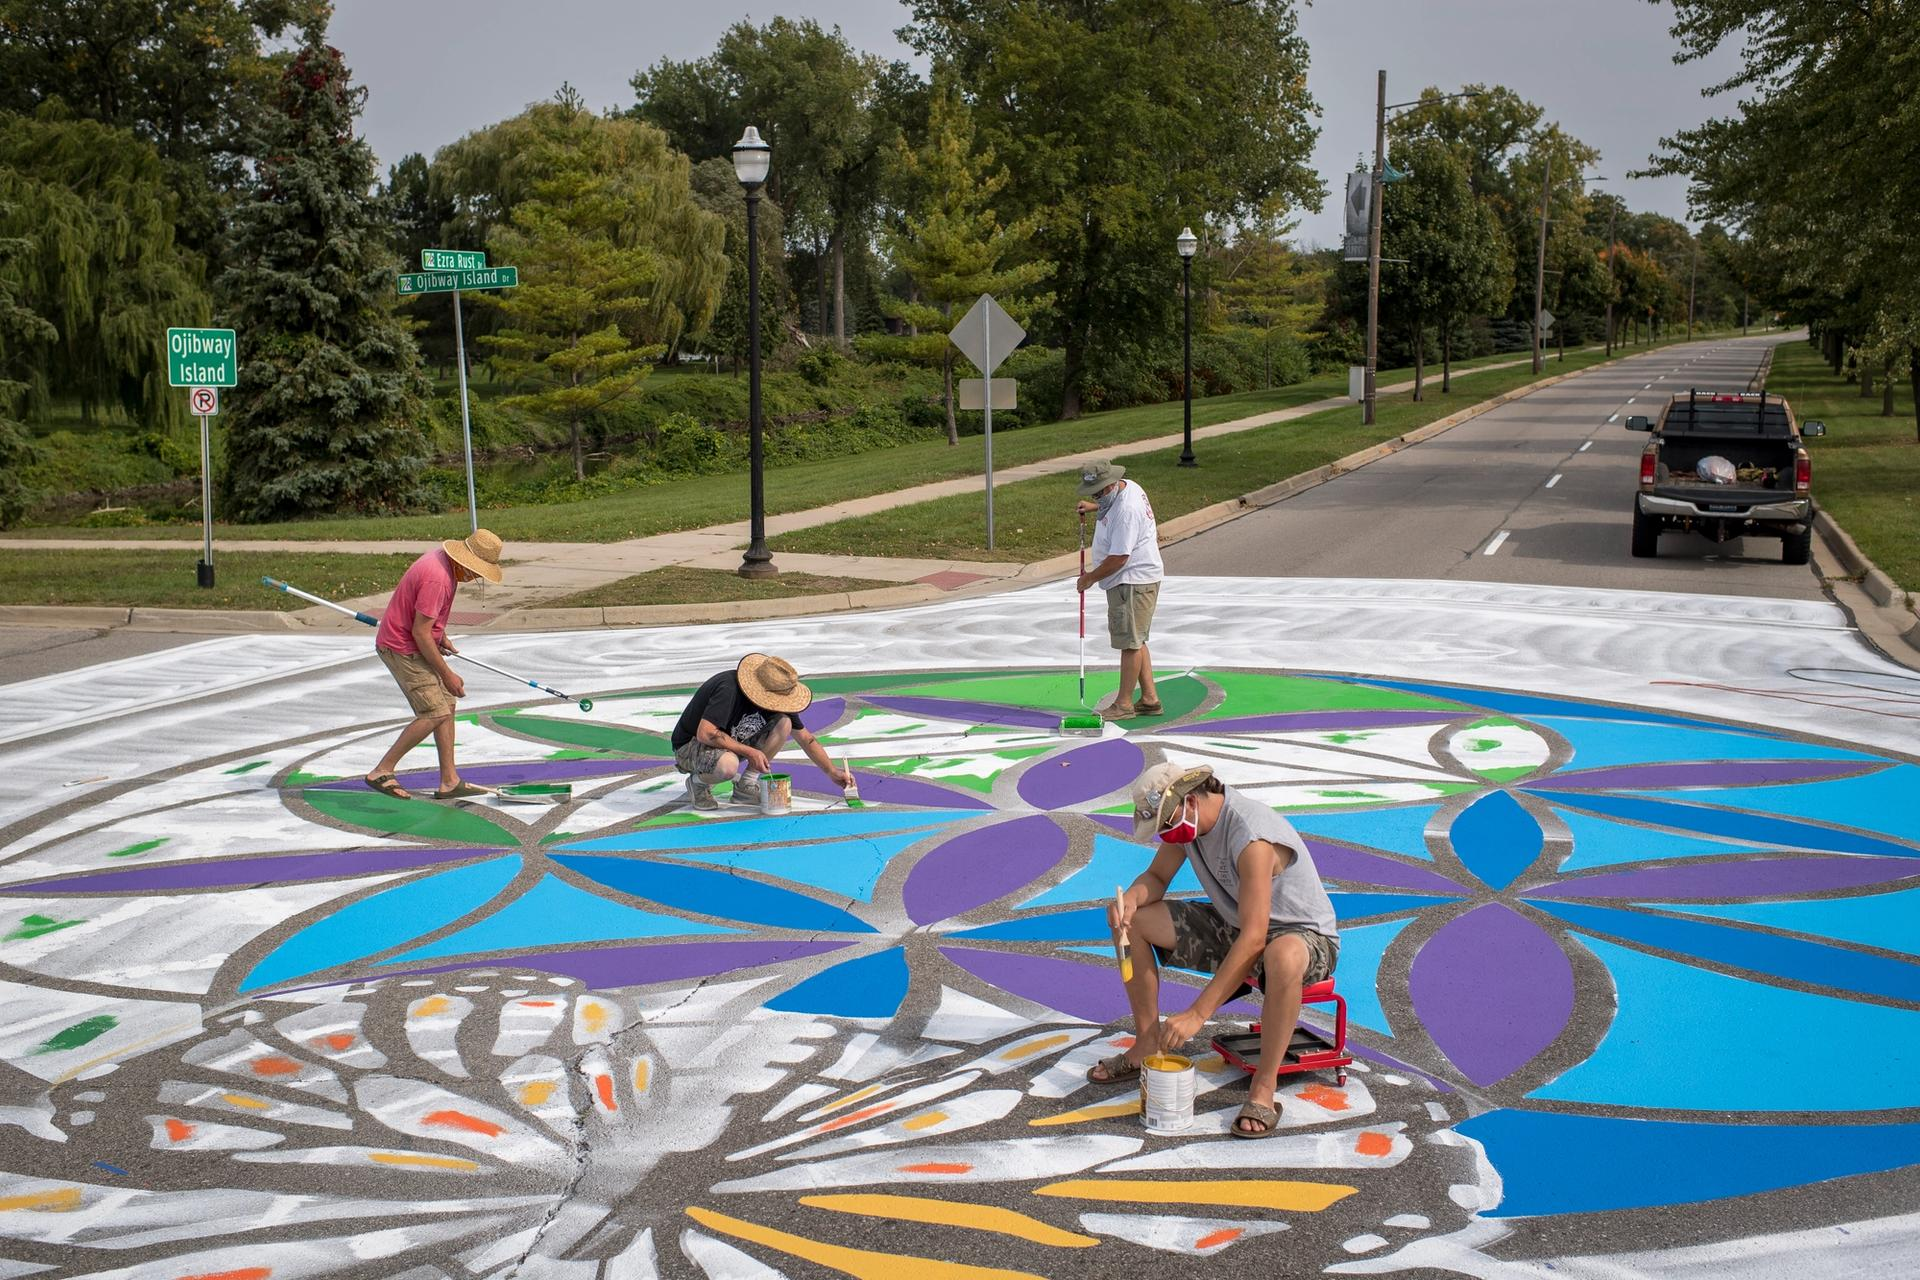 The street mural in Saginaw, Michigan, by the artist Stephen Hargash, with assistance from Tristan Zamora Photo: Nick Antaya